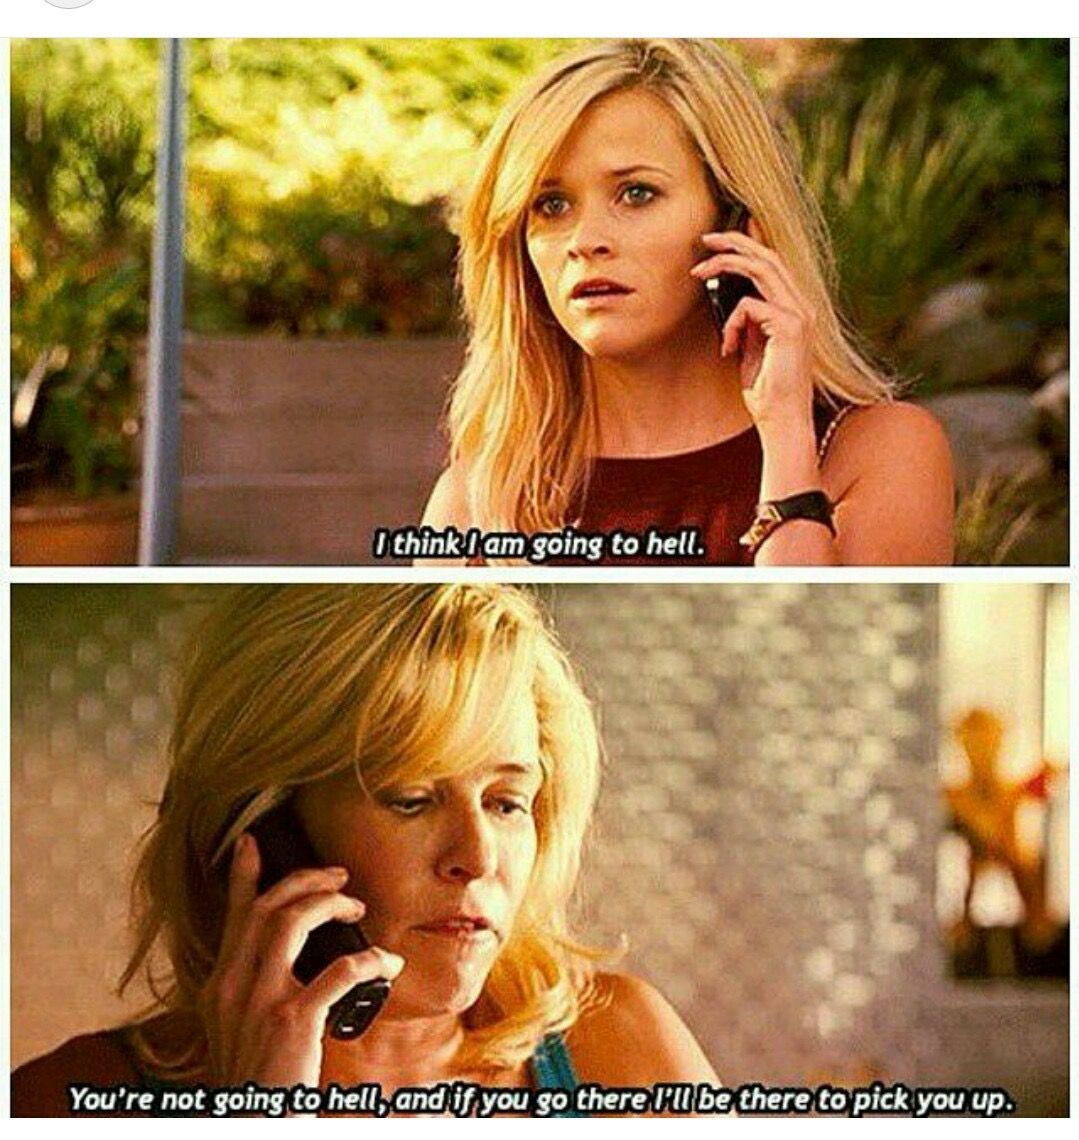 Pin By Lia Woodford On Can I Quote You On That Best Friends Movie Friendship Quotes From Movies Movie Quotes